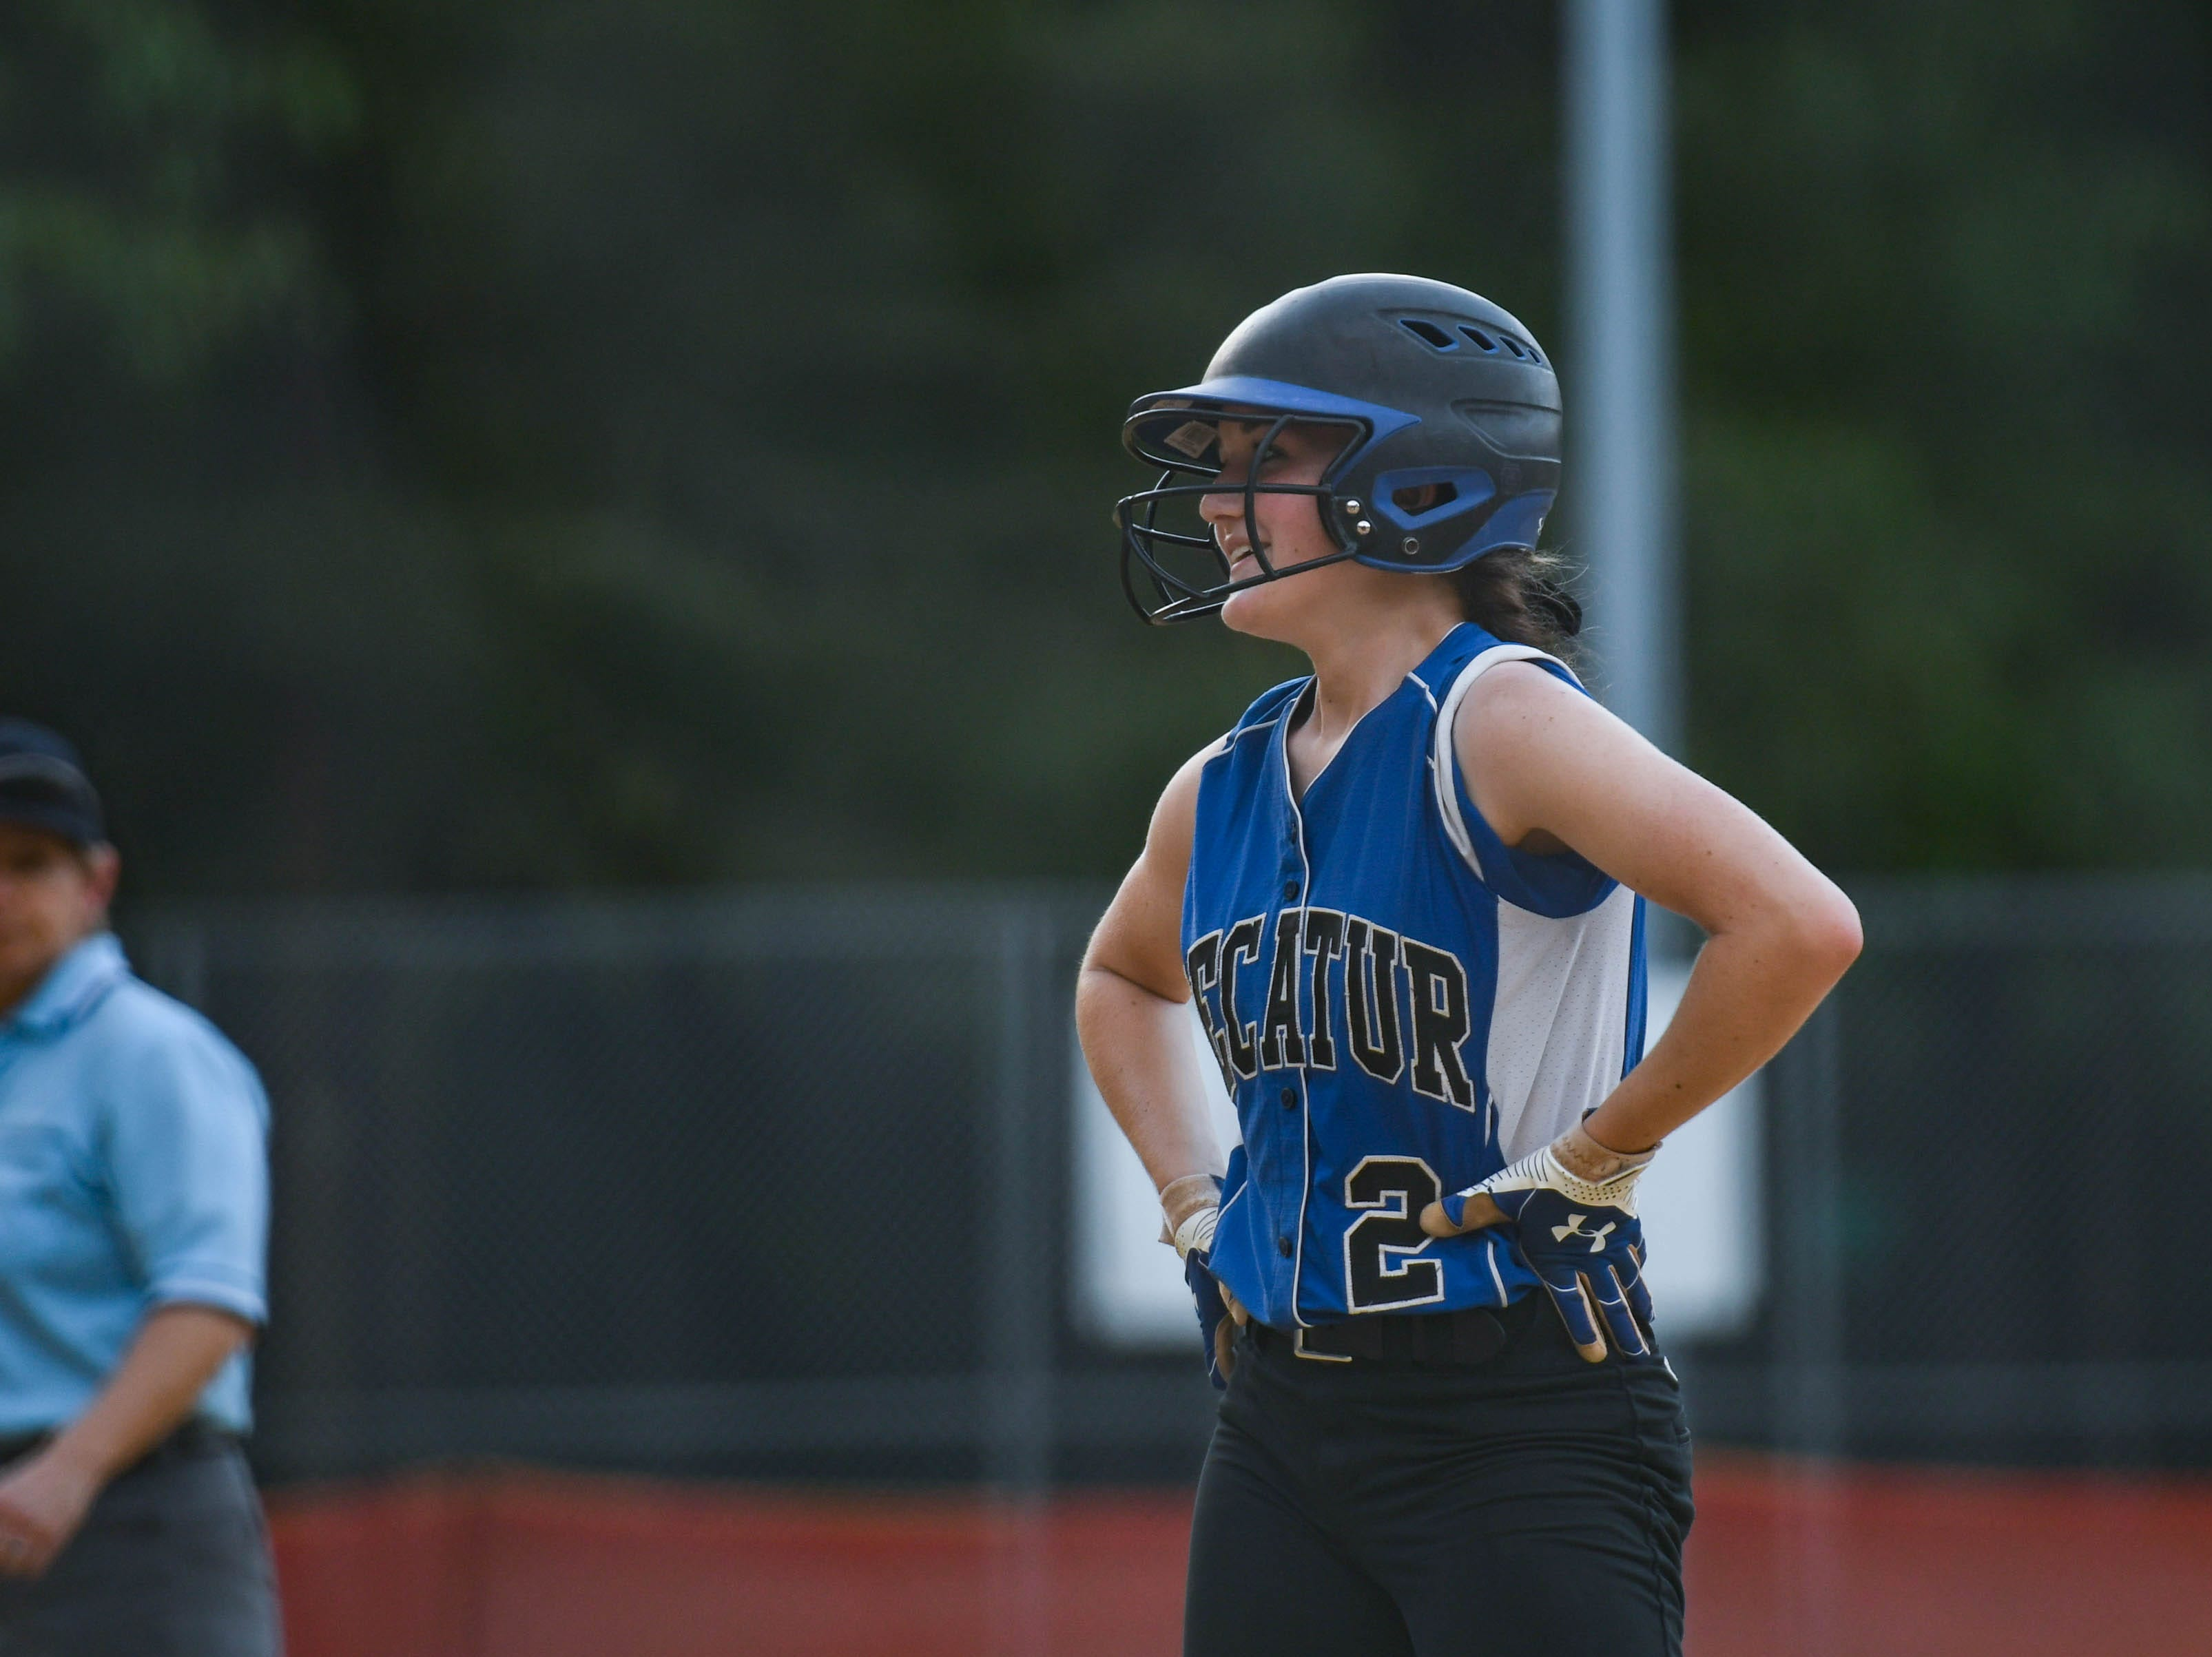 Decatur's Skylar Griffin (2) smiles after hitting a triple against Colonel Richardson in the Bayside Softball Championship game on Wednesday, May 8, 2019. Decatur prevailed with a score of 4 to 1.